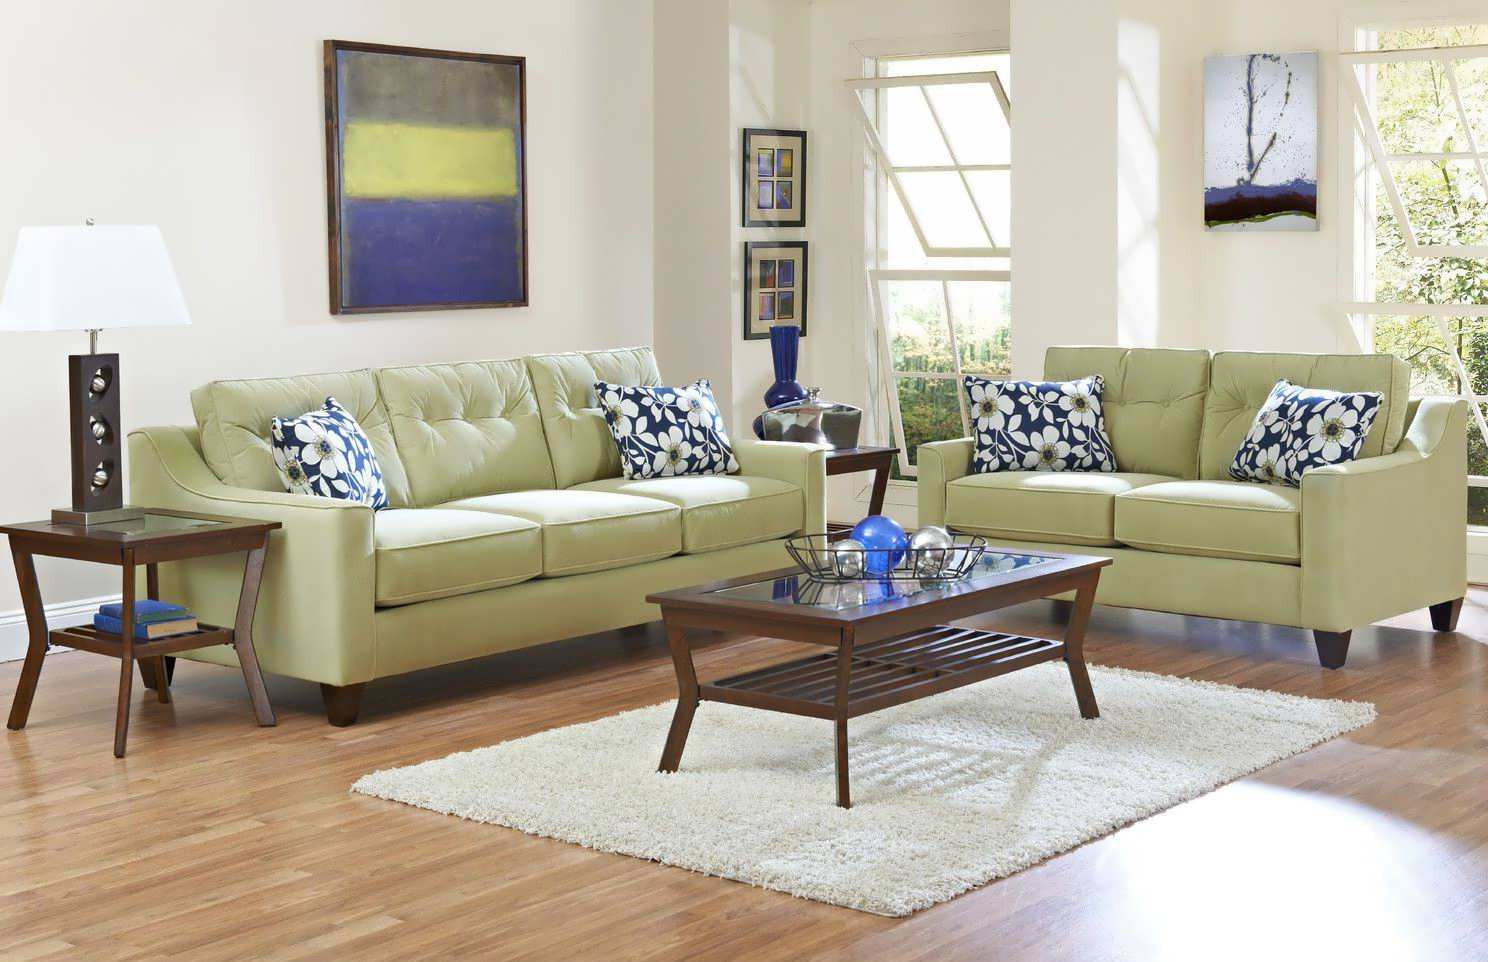 Mor Furniture Living Room Sets  Roy Home Design. Blue Living Room Furniture Sets. Living Room Lights Ideas. Living Room C. Living Room Striped Wallpaper. Burnt Orange And Brown Living Room. Open Kitchen Dining And Living Room Floor Plans. I Want To Decorate My Living Room. Living Room Paint Colors Pictures